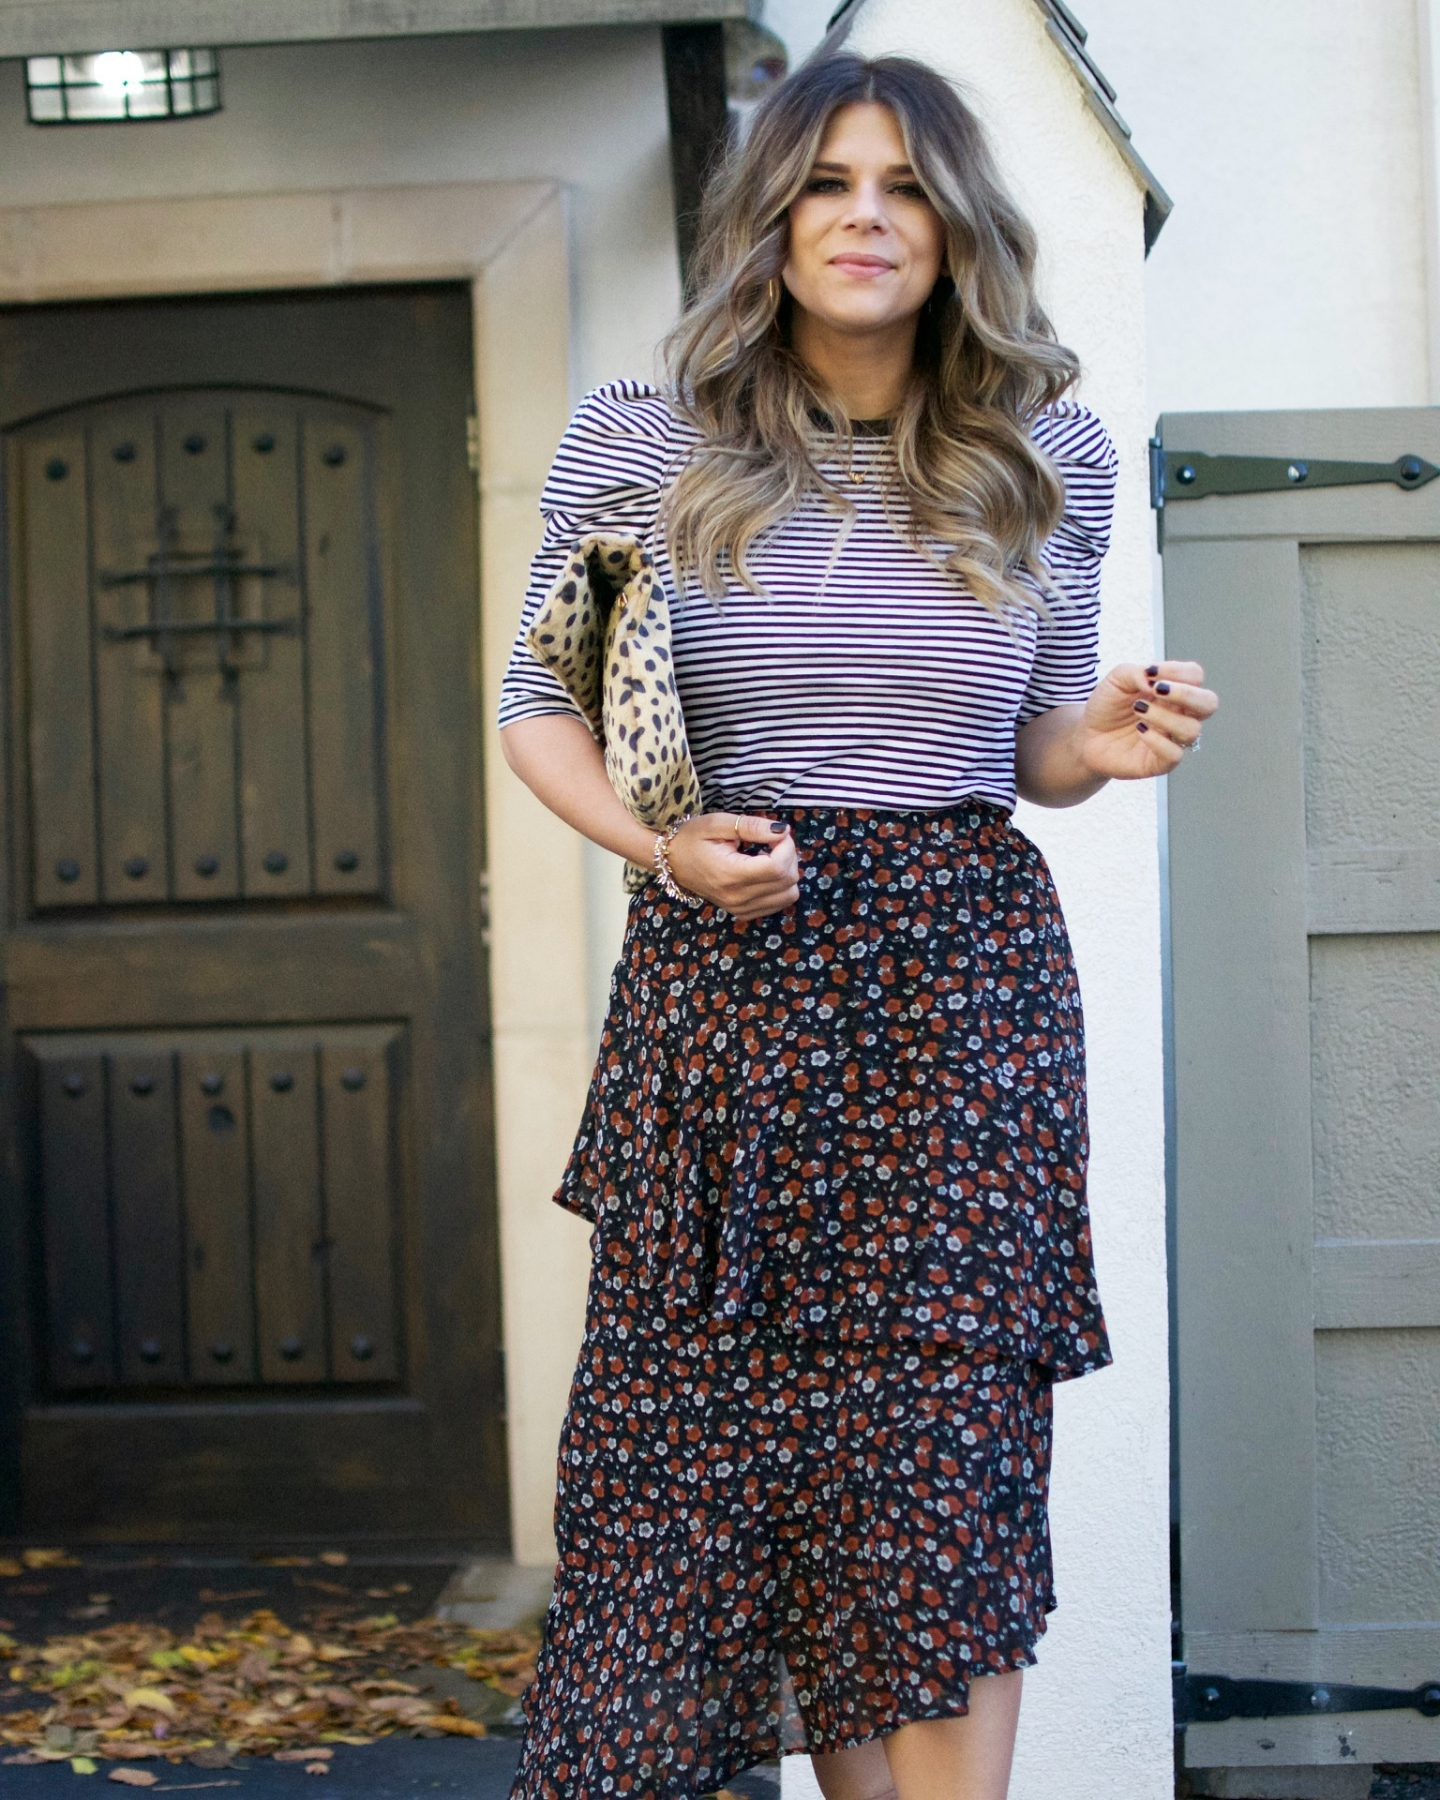 Target, Floral Midi Skirt, Leopard Clutch, Sock Booties, Stella & Dot, Invisalign